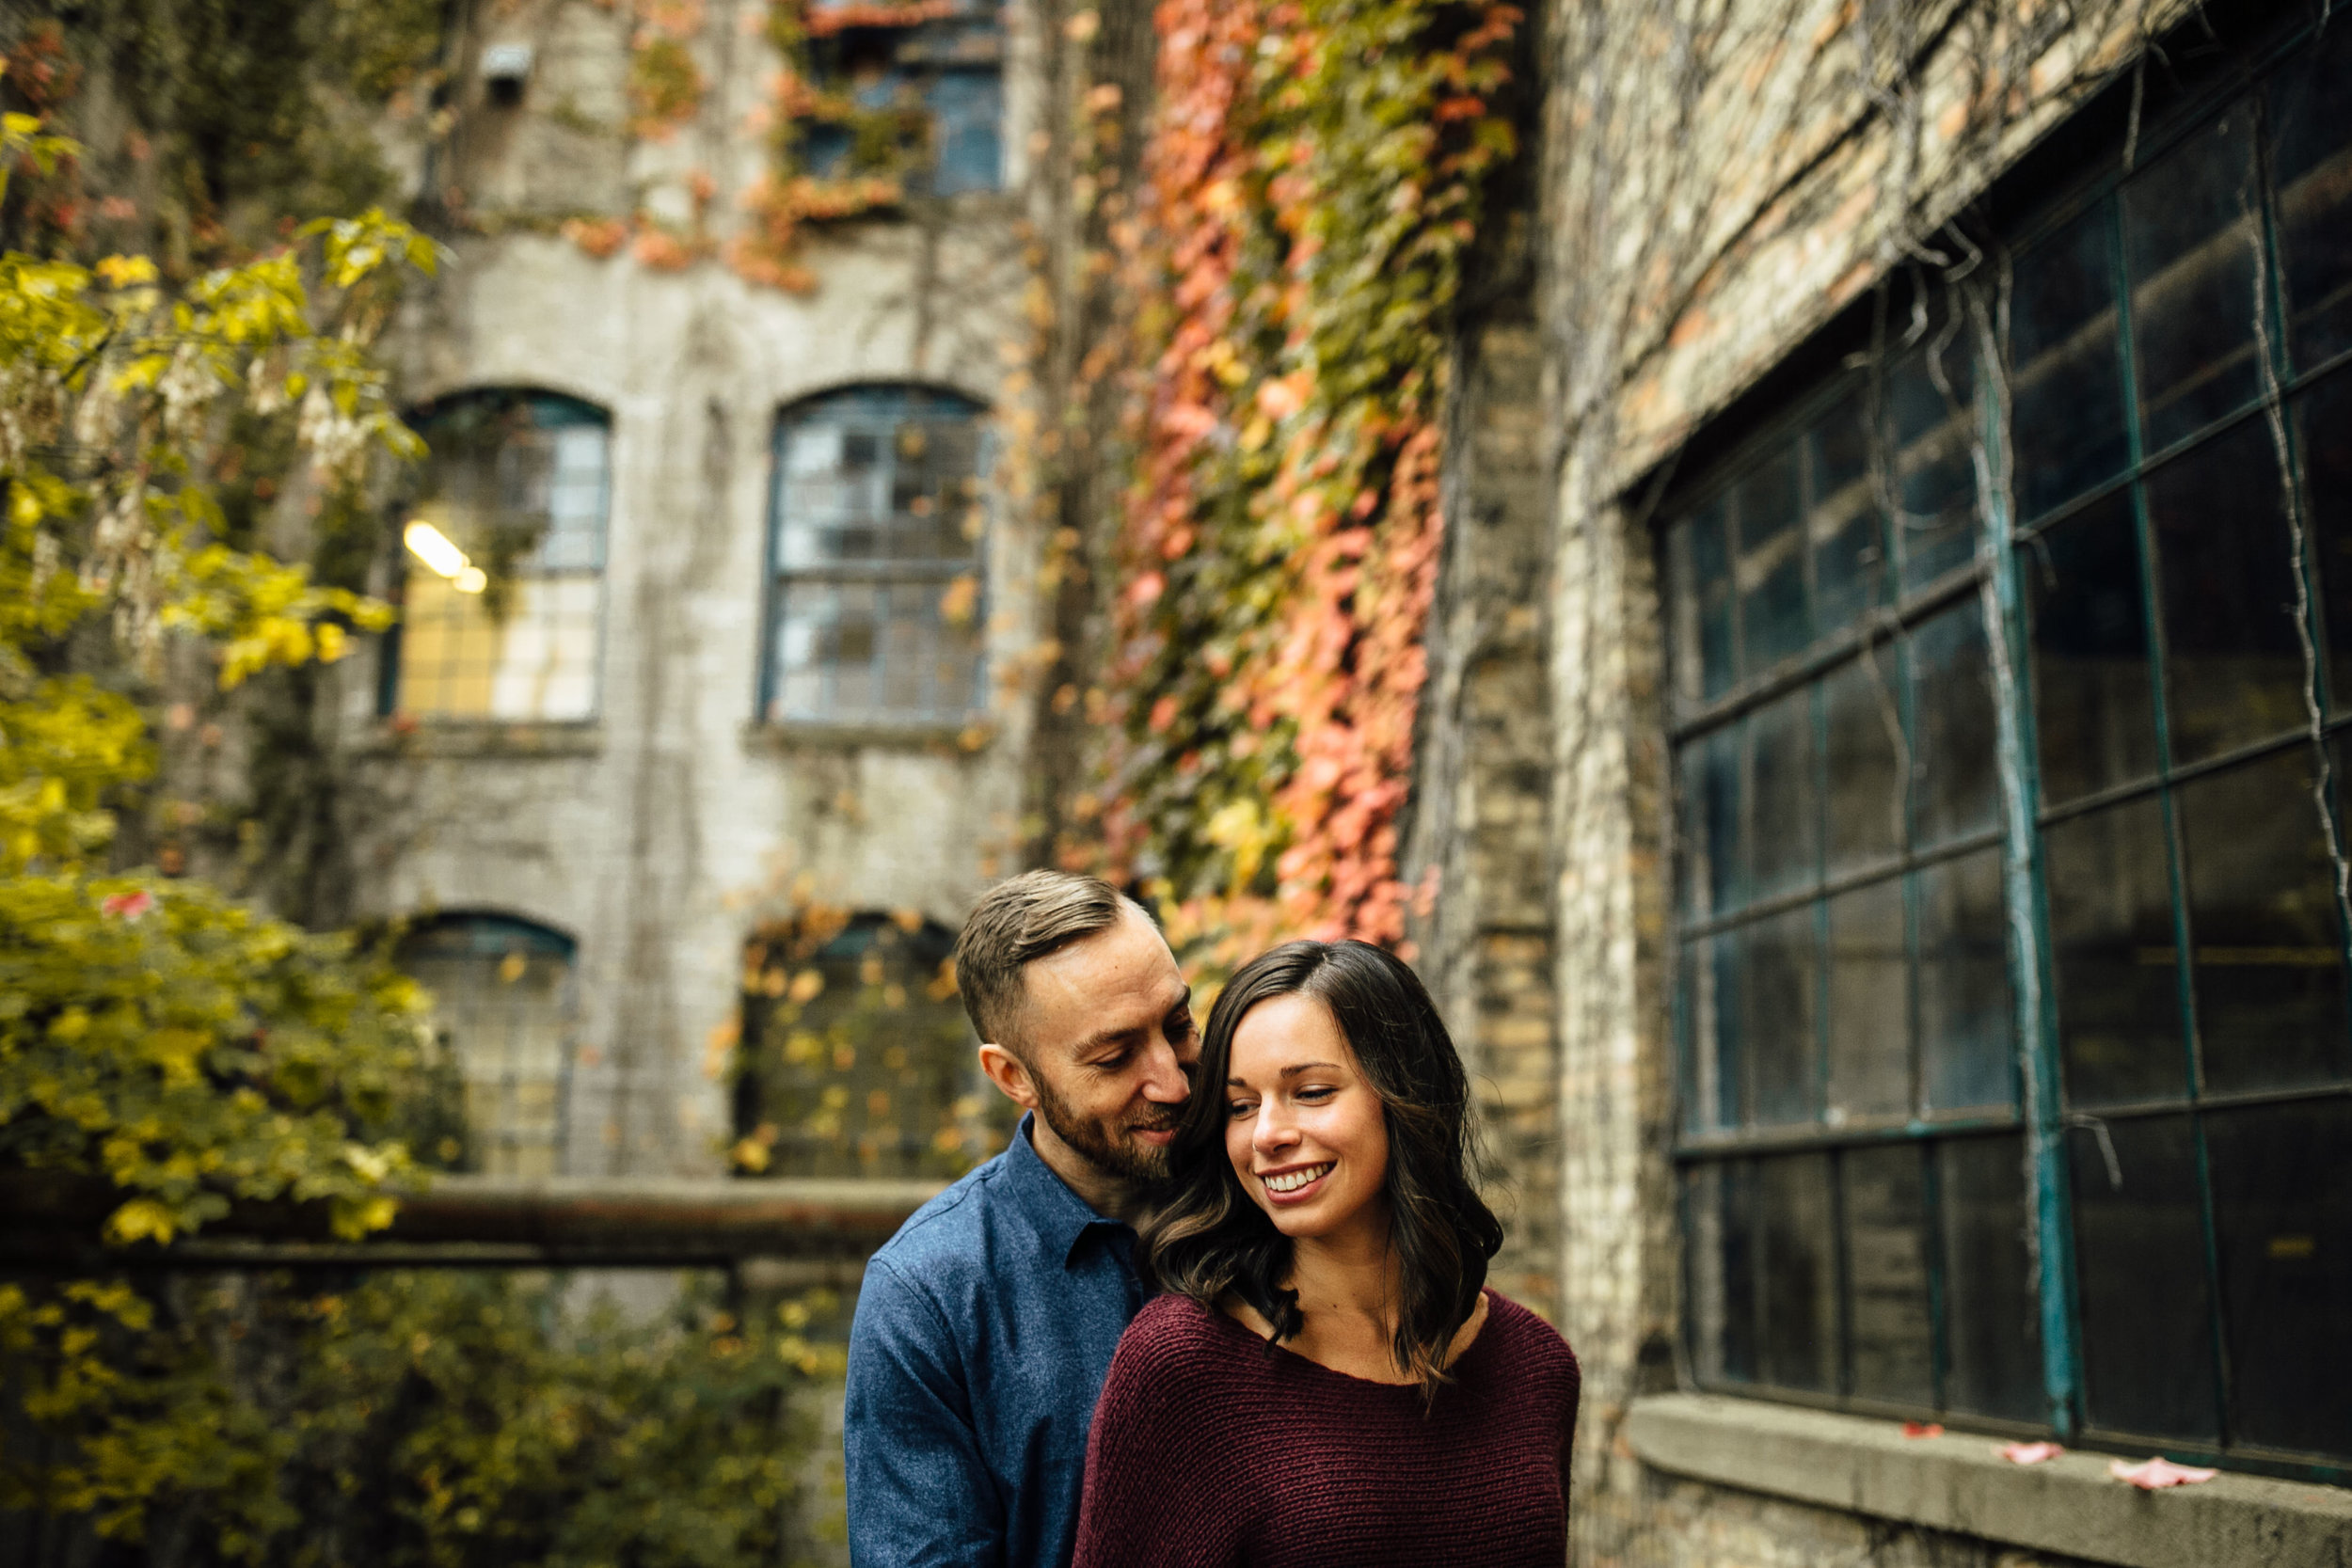 Katie-Kyle-Grand-Rapids-Engagement-Michigan-Wedding-Photographer-83.jpg